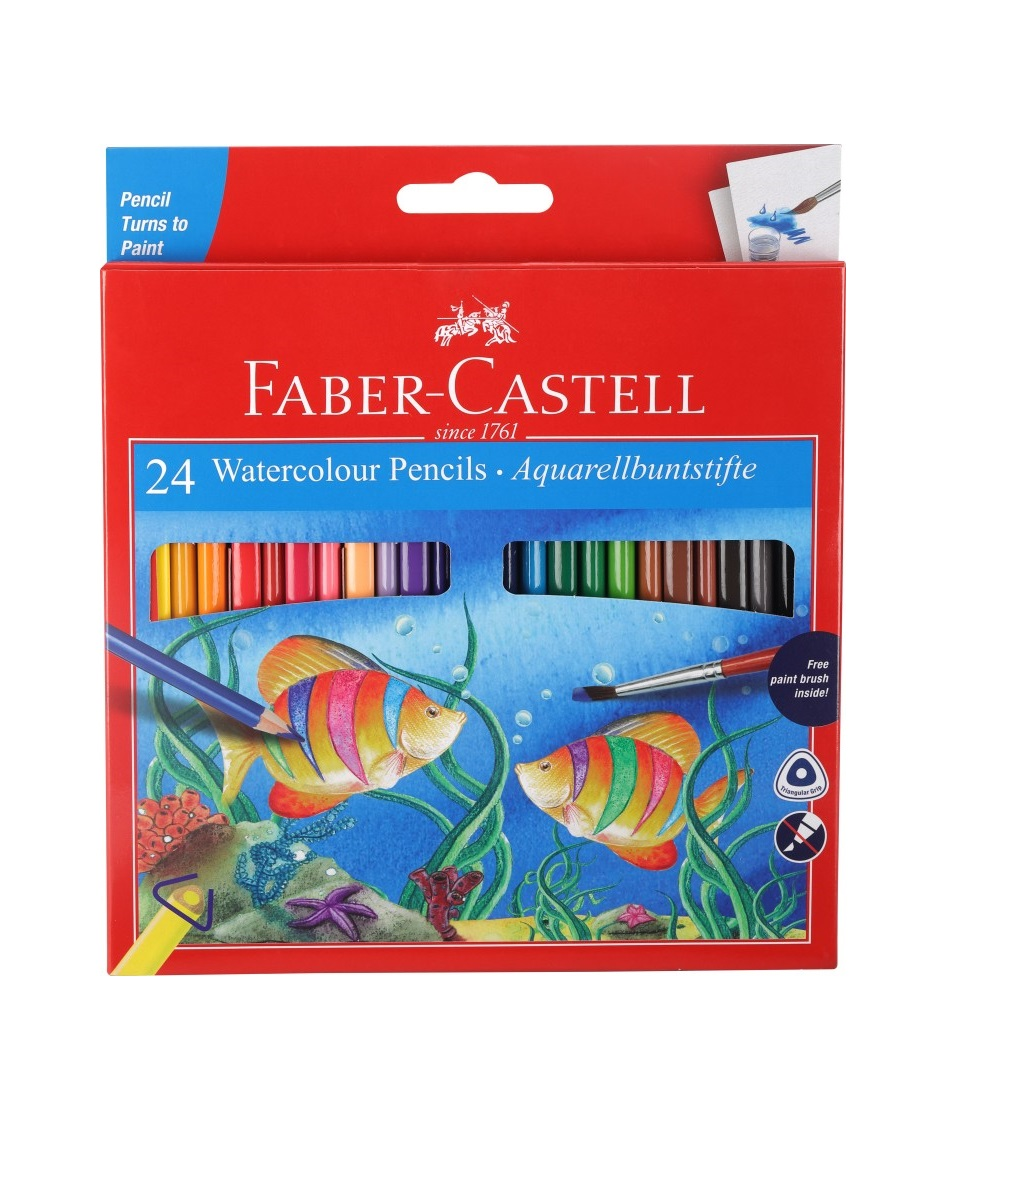 Faber-Castell 24 Water Colour Pencils+ Paint Brush Pencil  (Assorted)